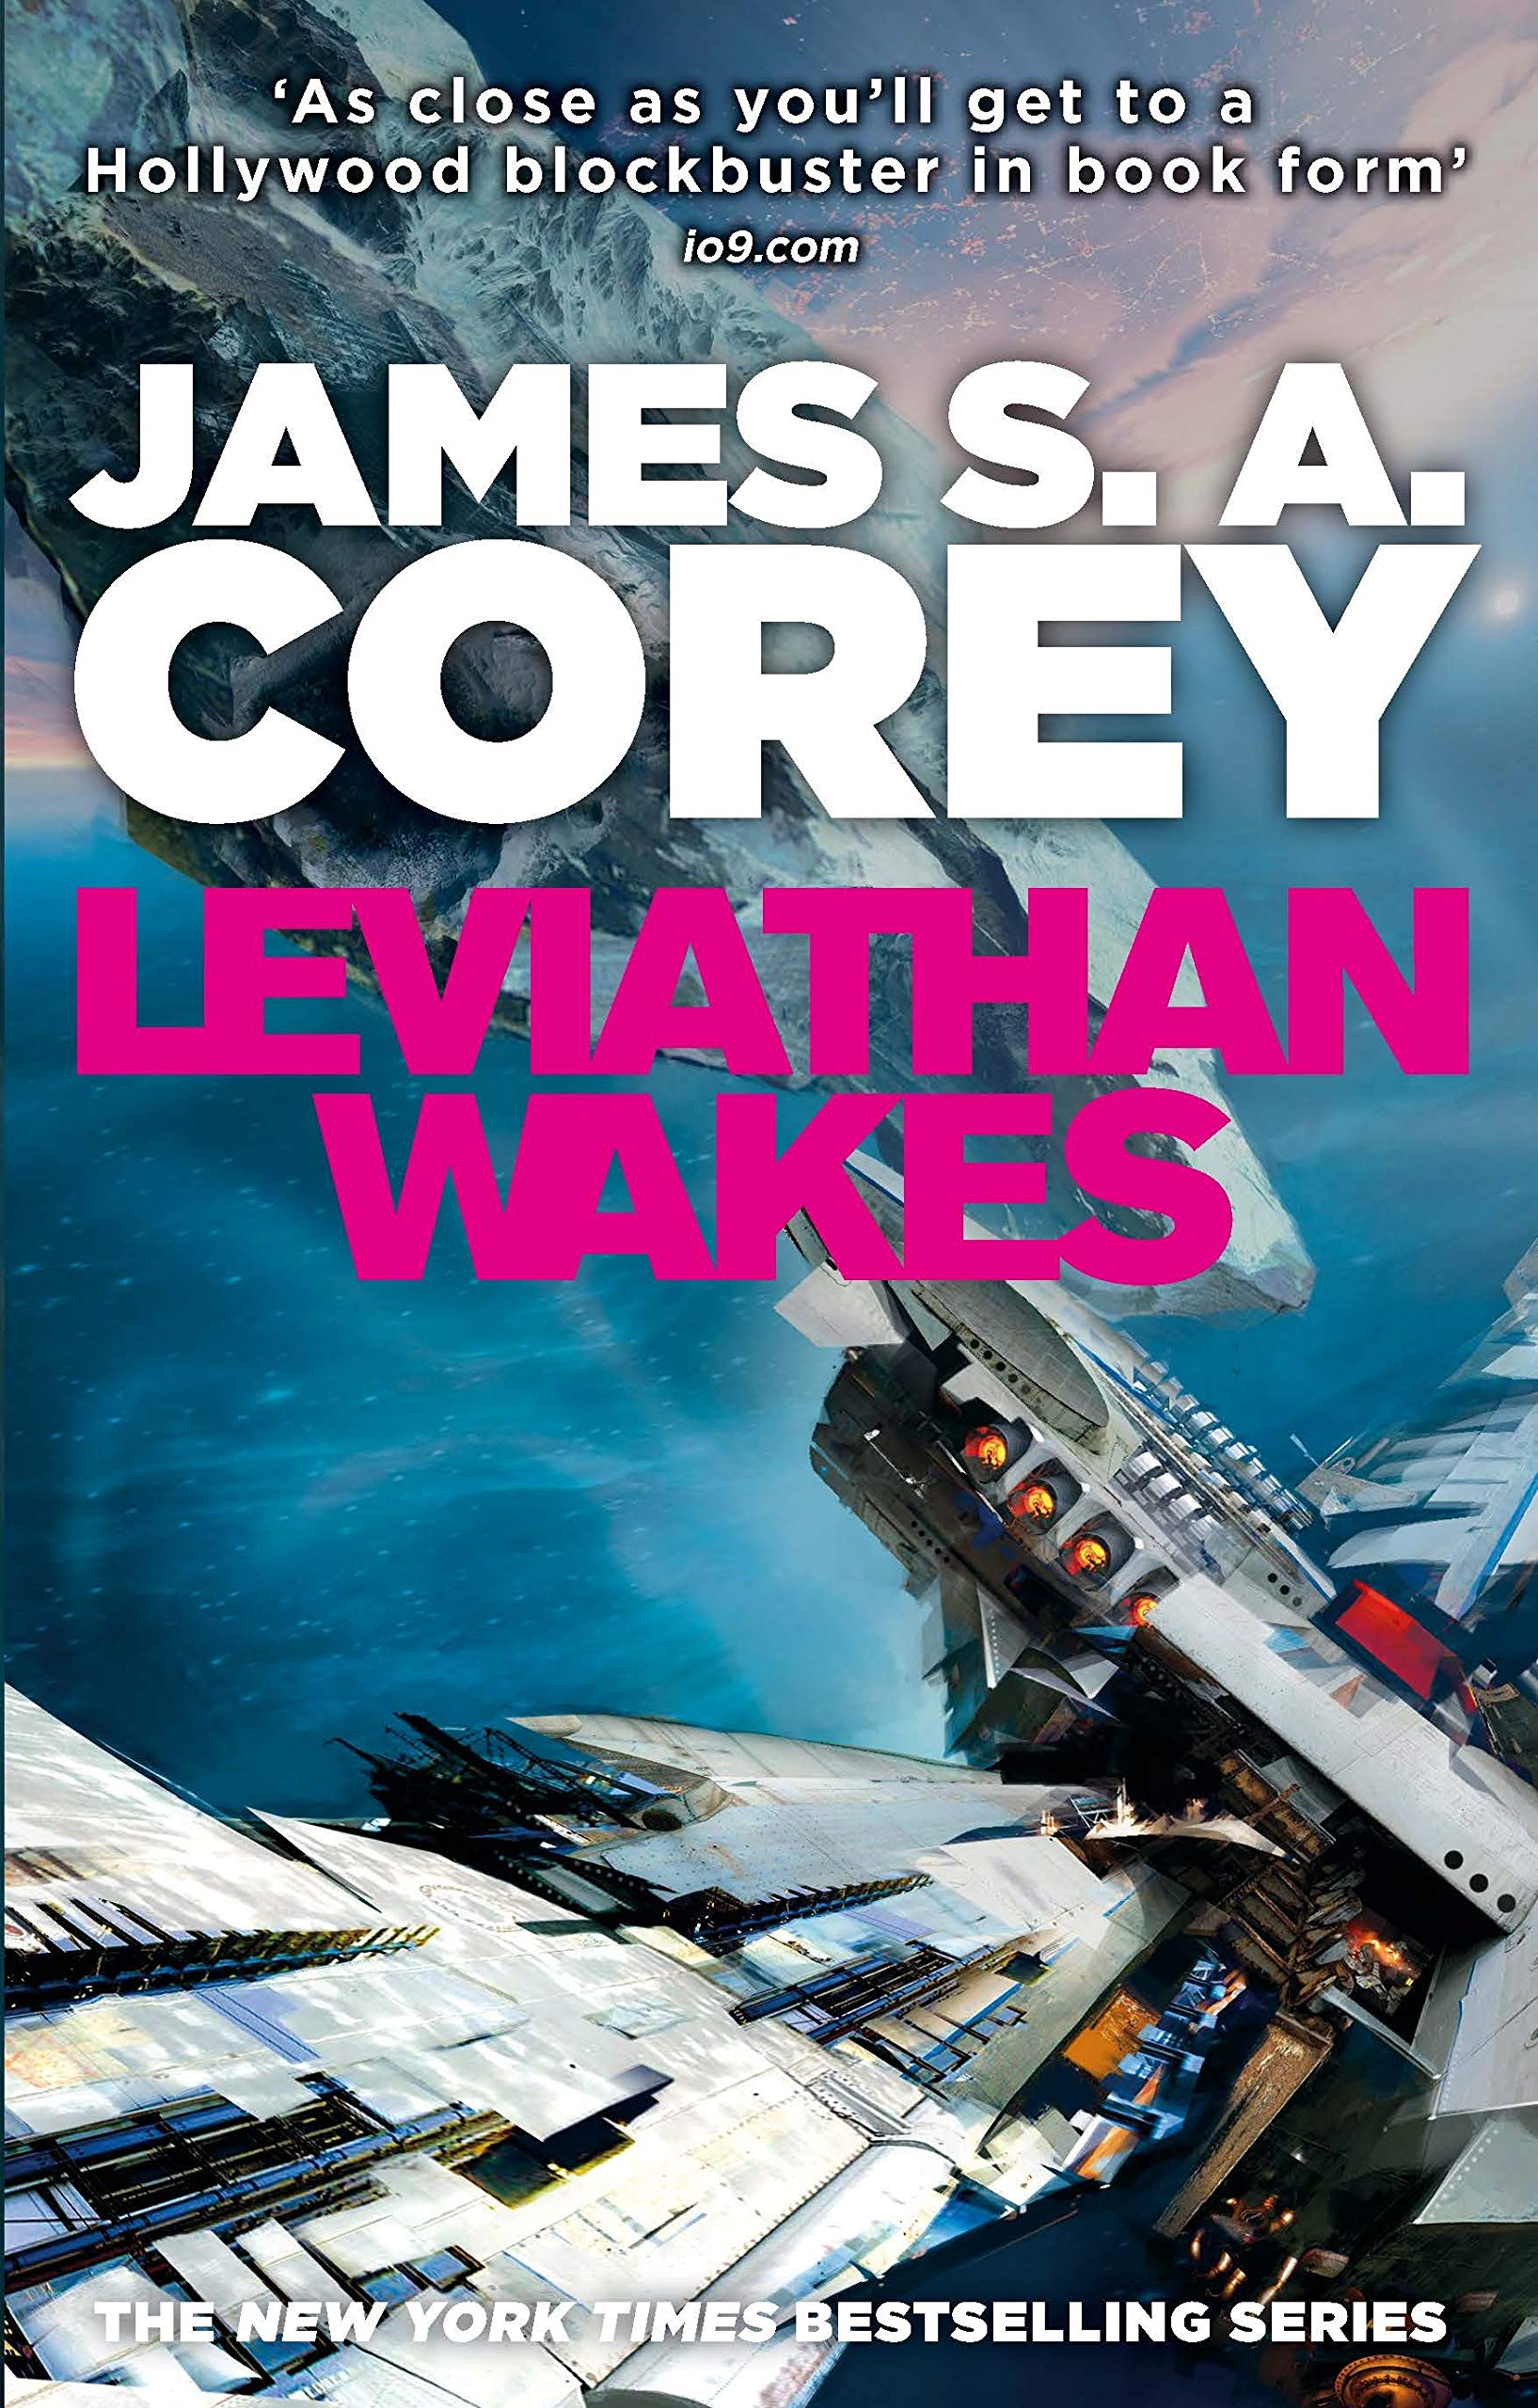 Leviathan Wakes: Book 1 of the Expanse (now a Prime Original series):  Amazon.co.uk: Corey, James S. A.: 9781841499895: Books